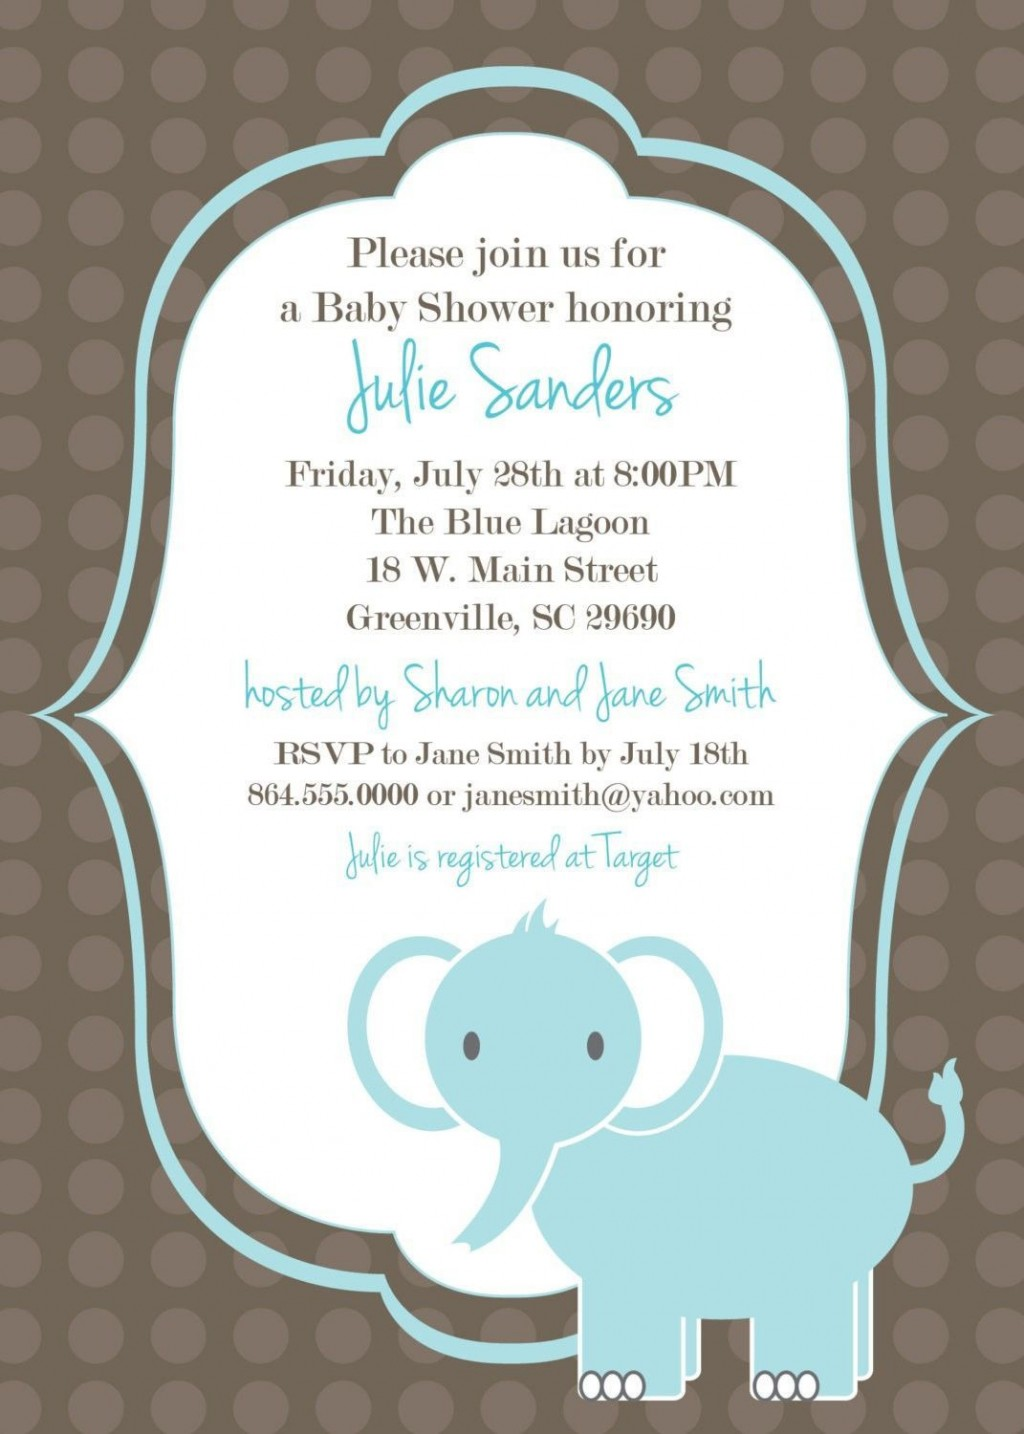 006 Stunning Free Baby Shower Invitation Printable Boy High Resolution  For Twin And GirlLarge